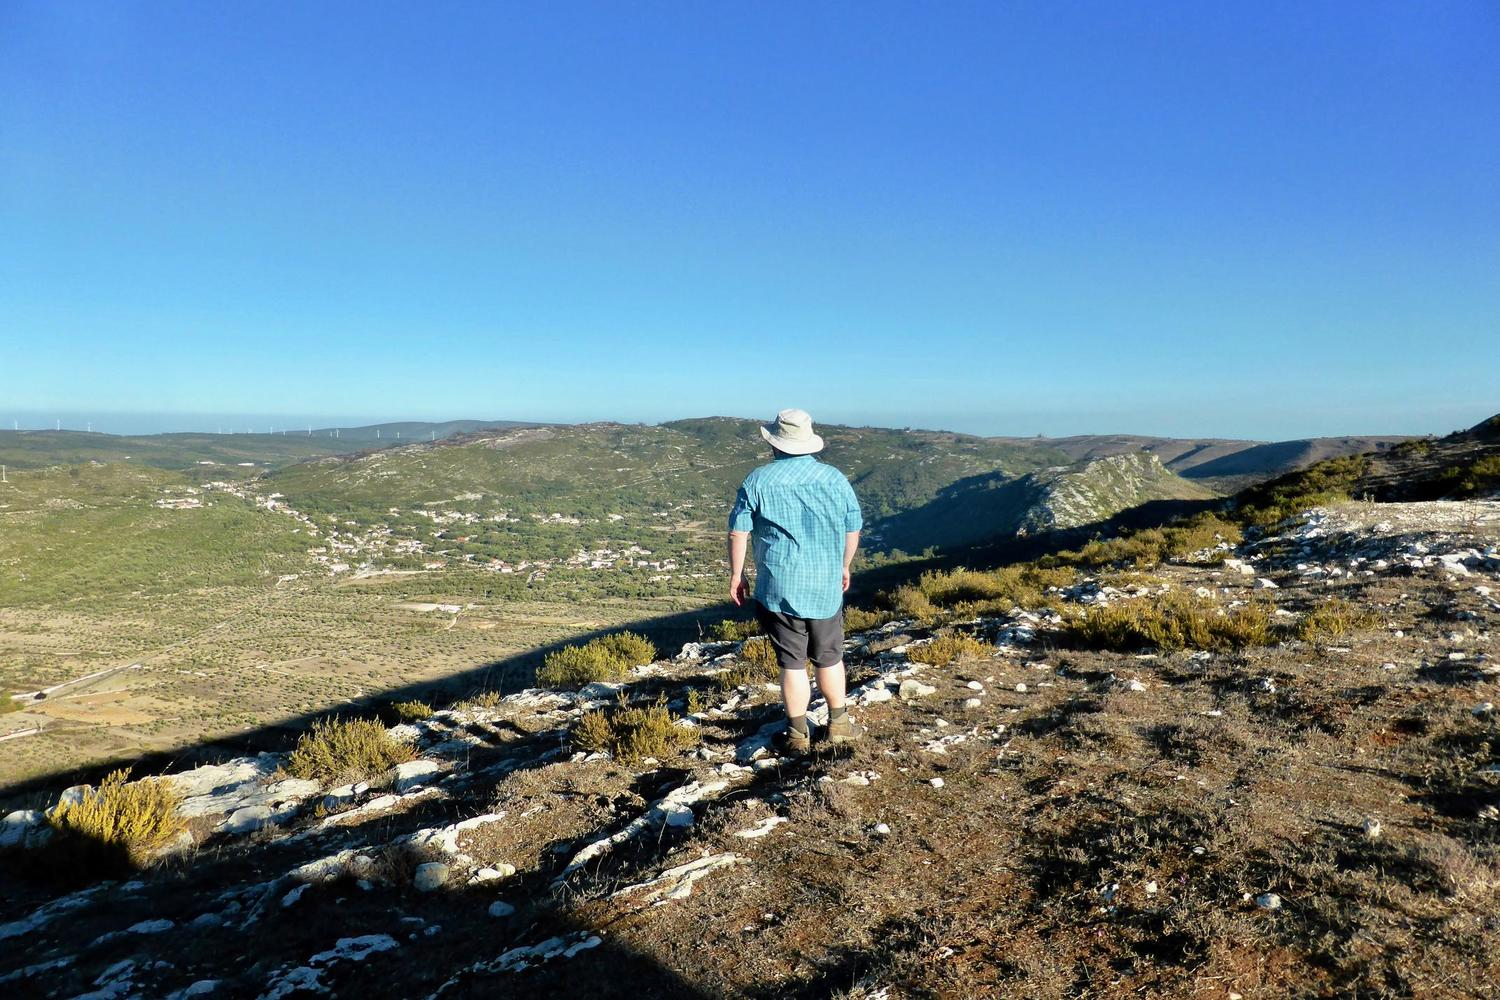 portugal-central-alvados-cooking-and-nature-hotel-view-from-top-of-serra-aire